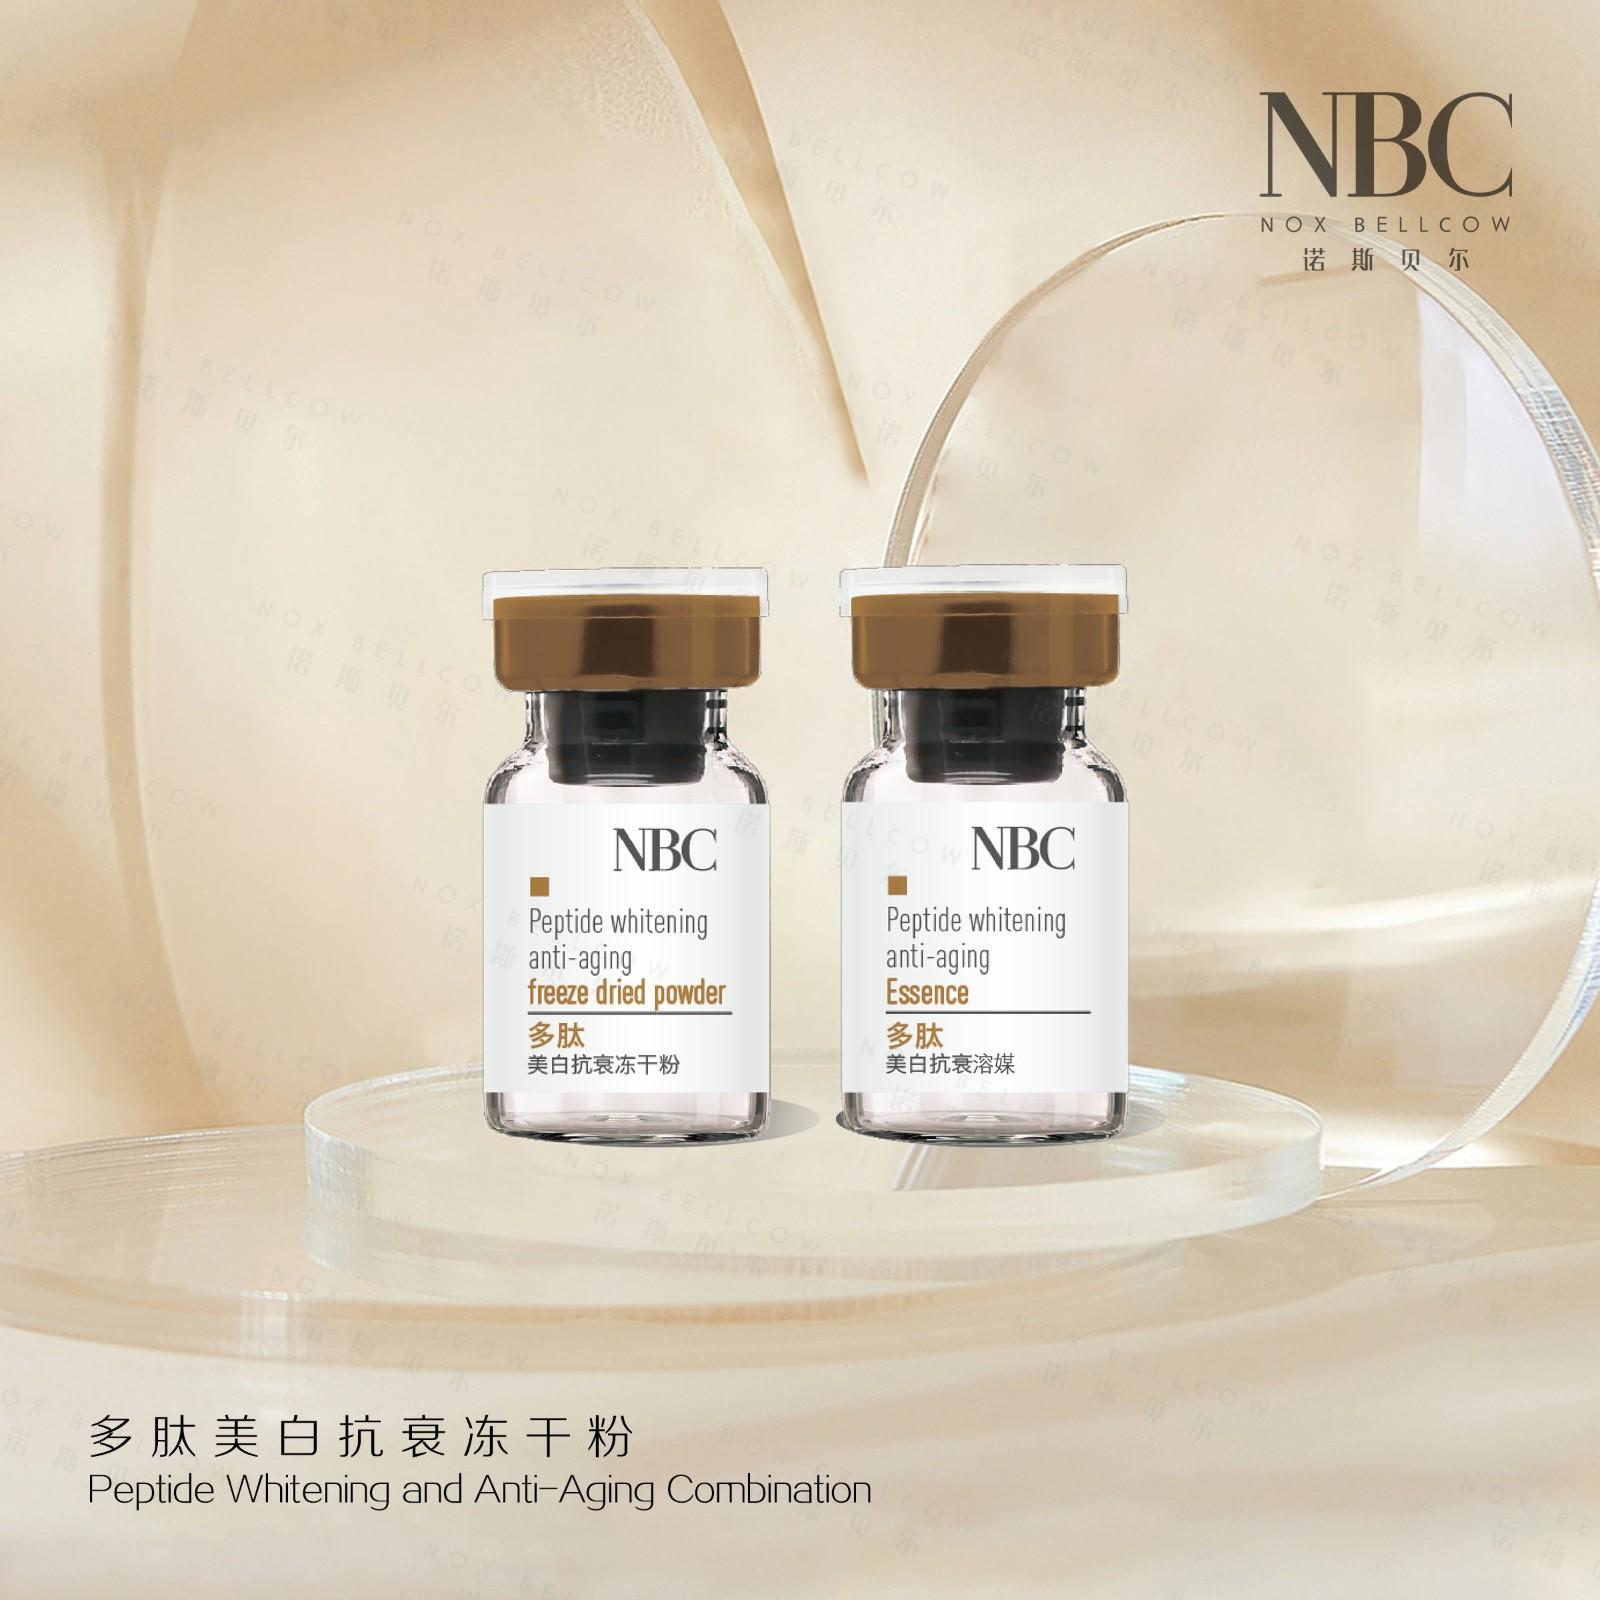 Facial Mask Manufacturer, Customized Skin Care Products, Wet Wipes-NOX BELLCOW-img